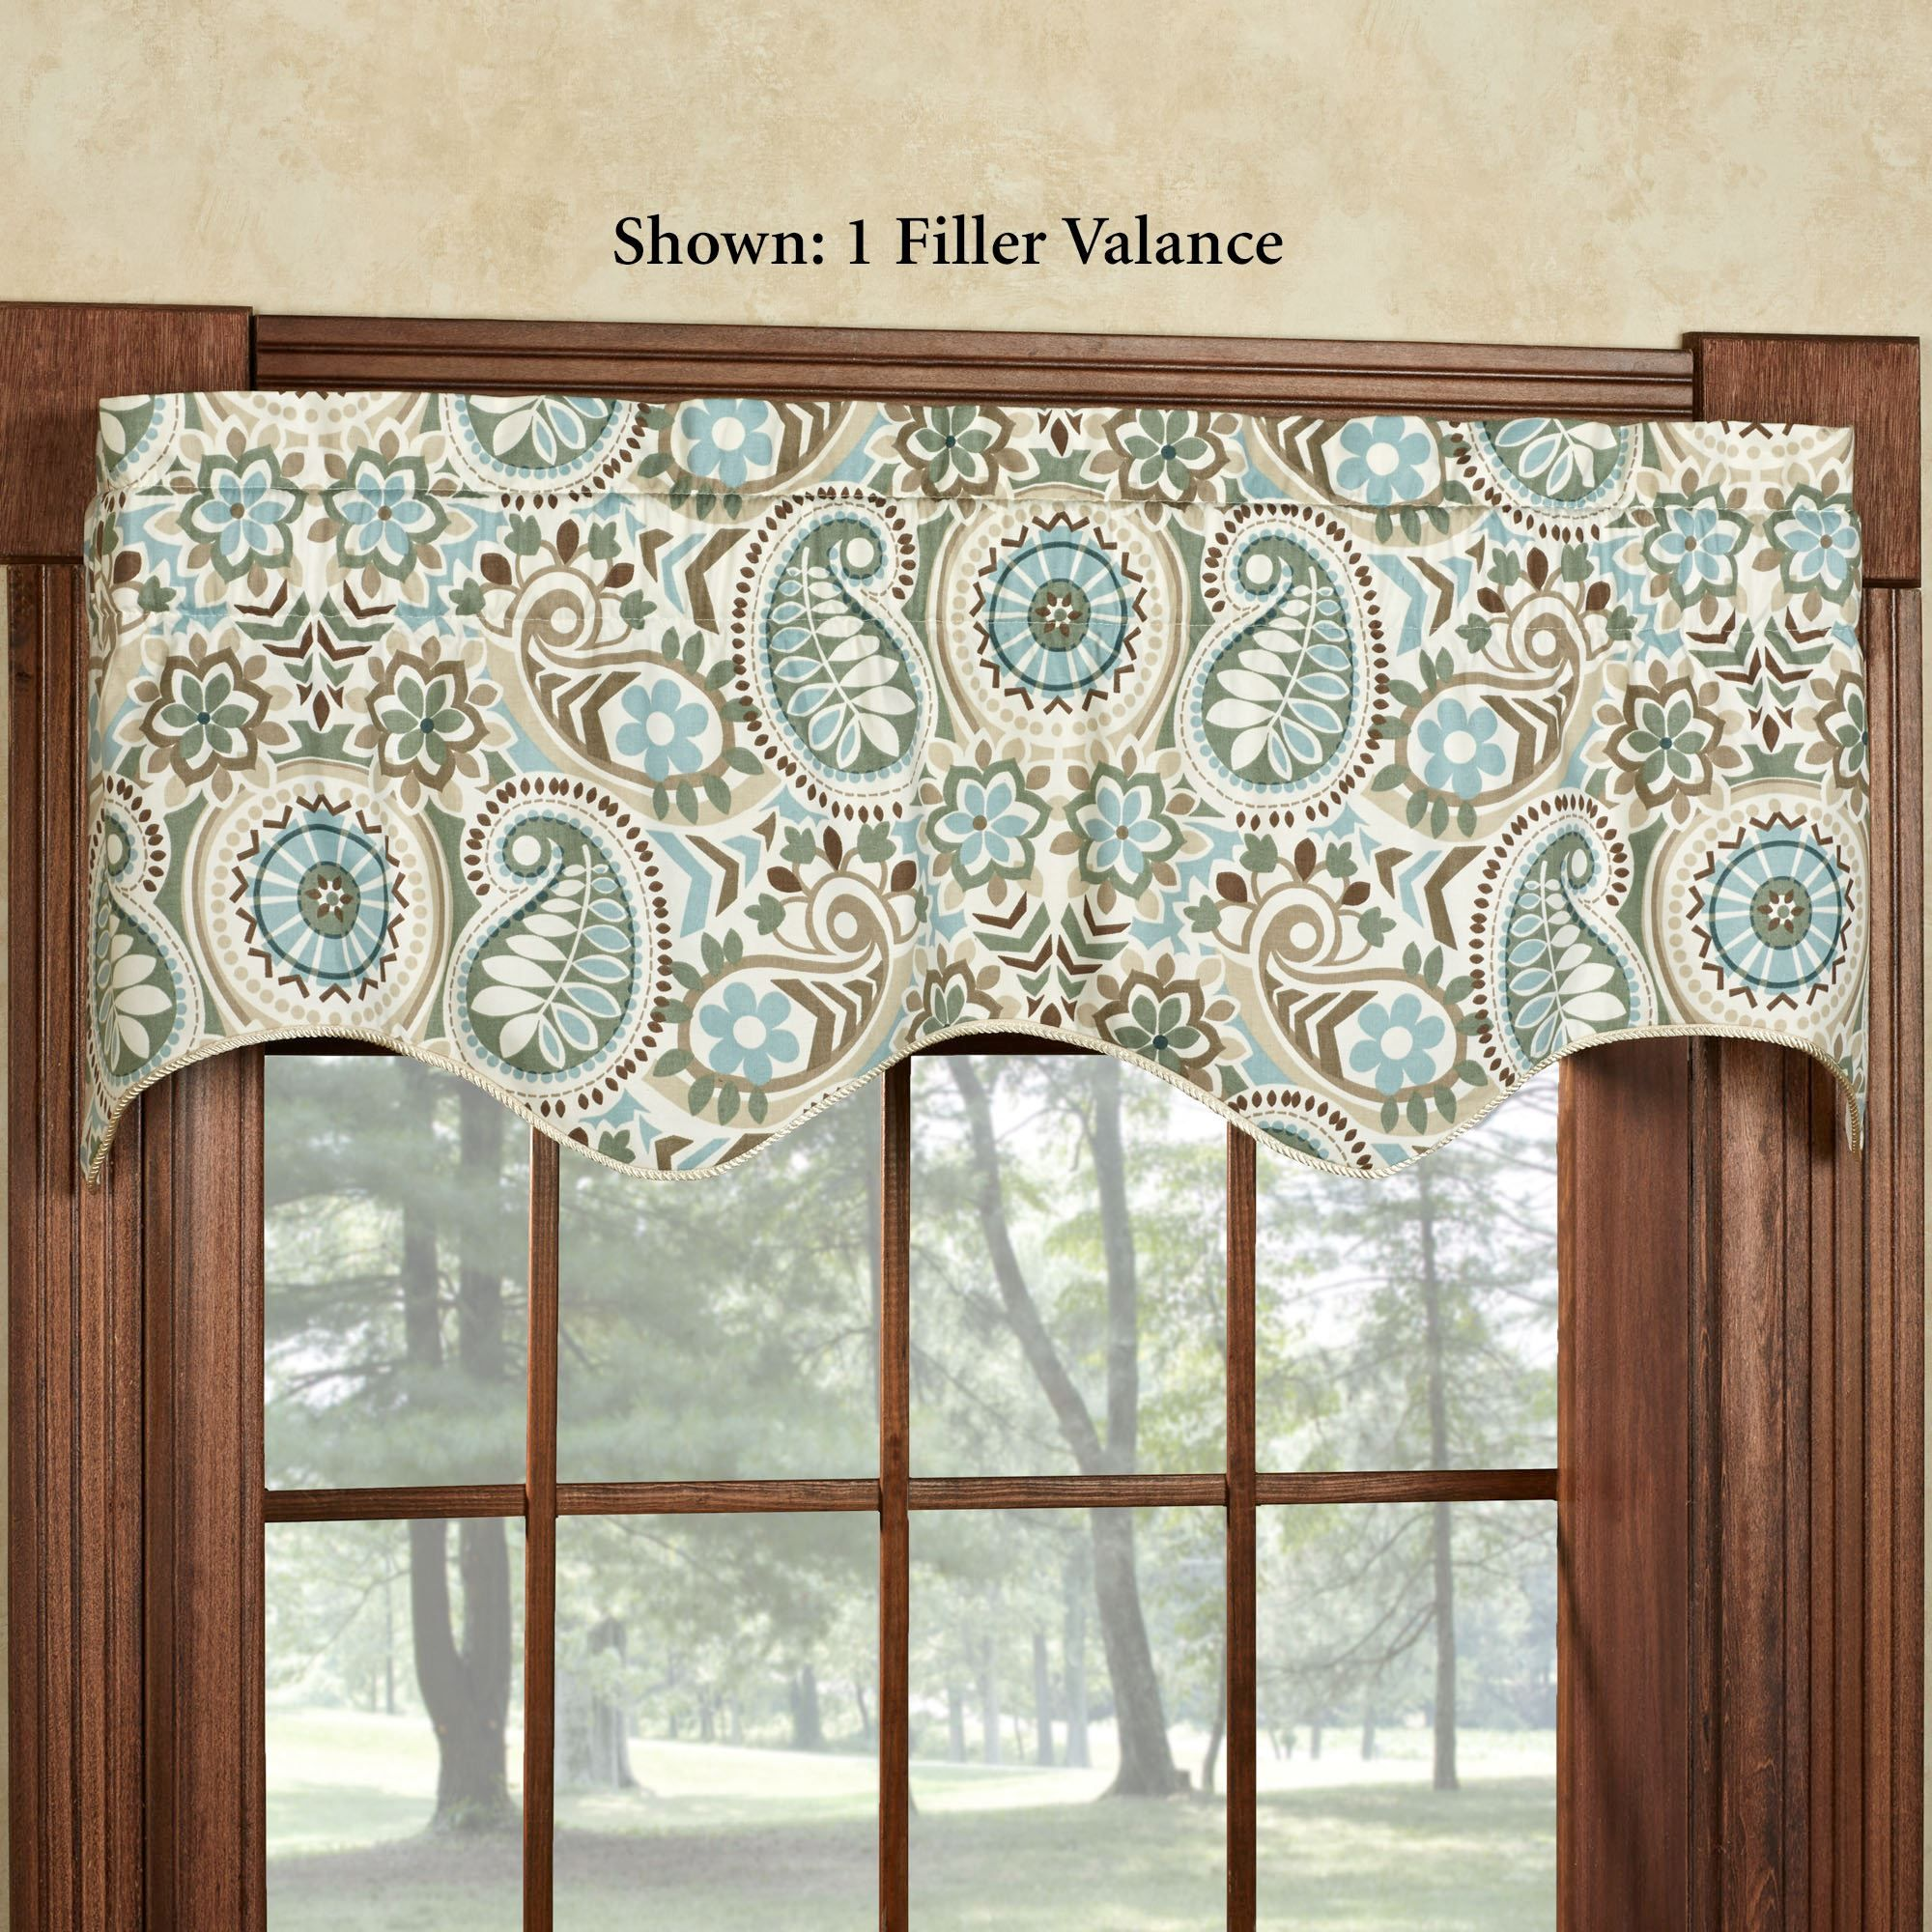 windows for over madison shipping belle park window valances garden valance home product orders on overstock embroidered free